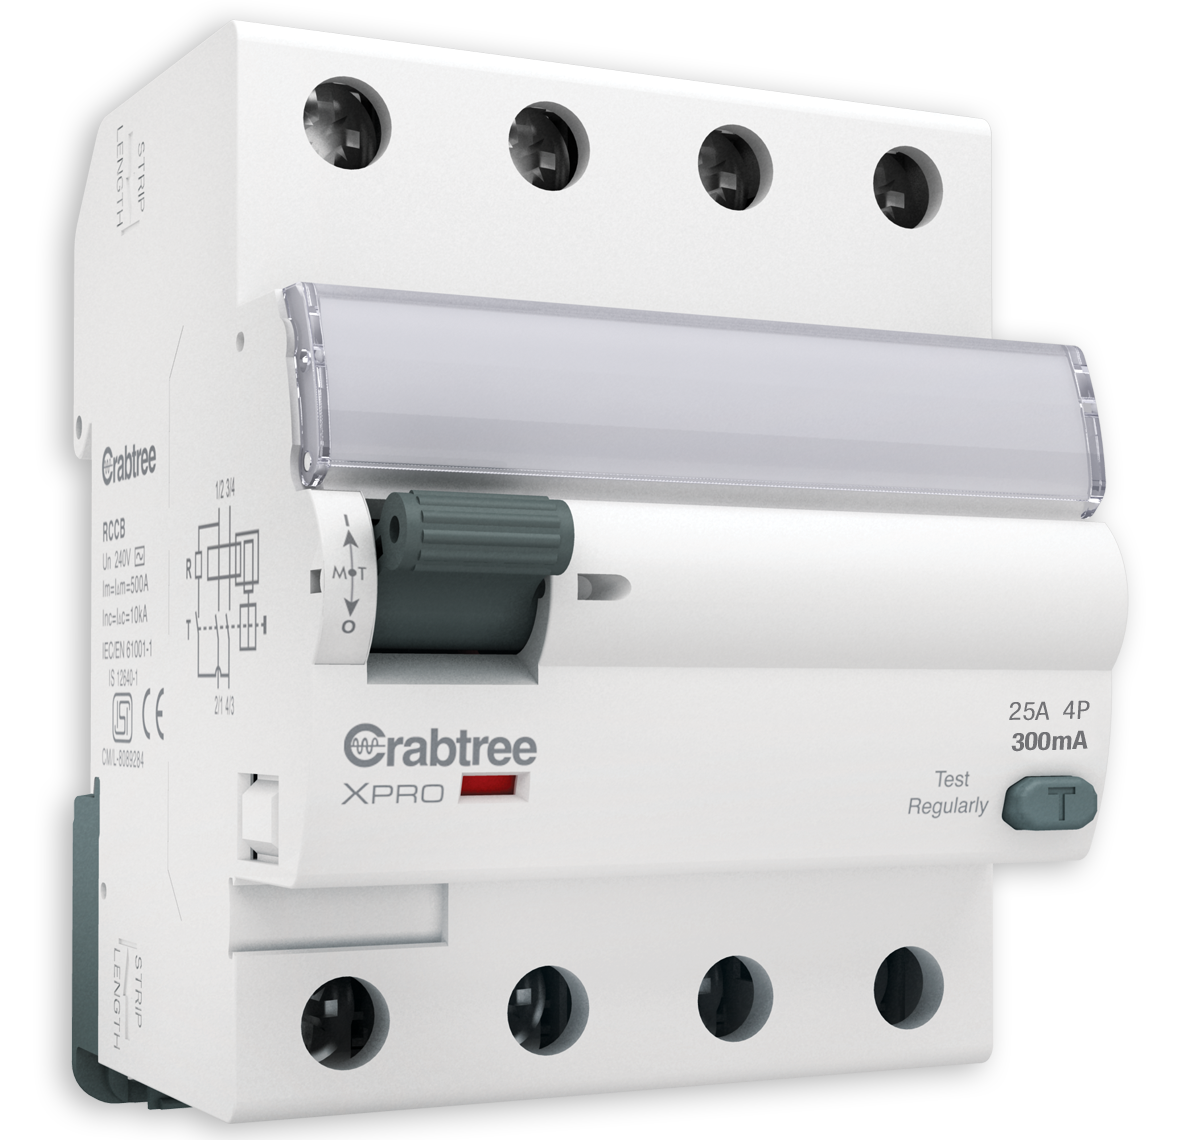 Crabtree - RCCB  A  Type FP 300mA-25A